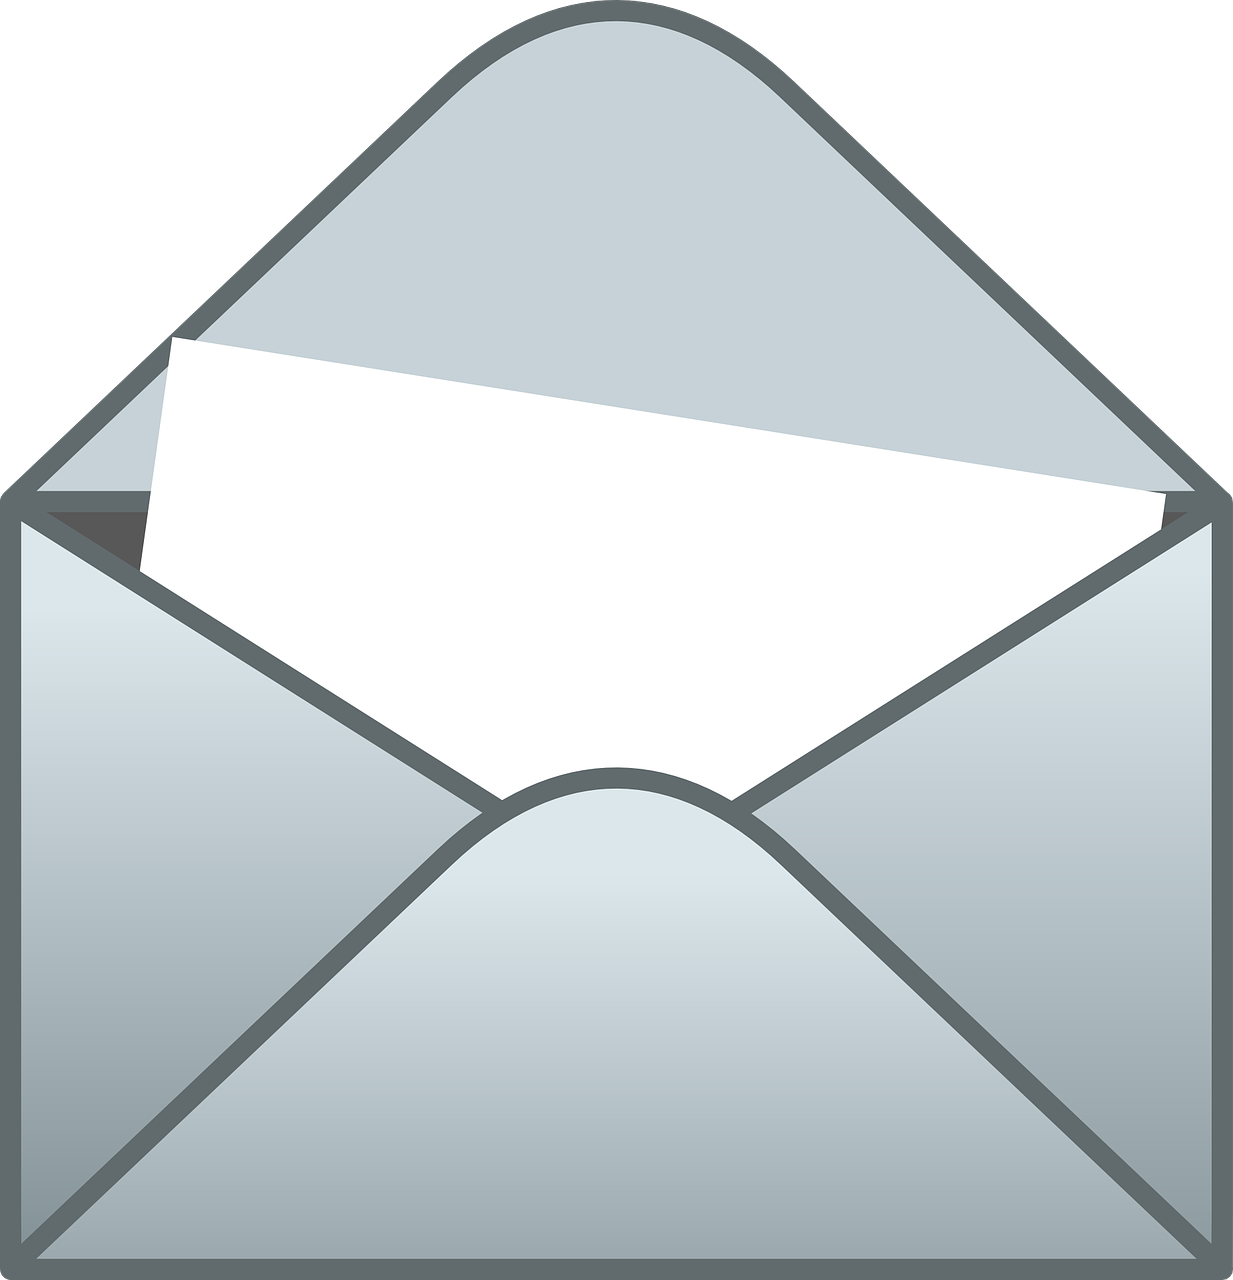 Envelope clipart recommendation letter.  collection of open